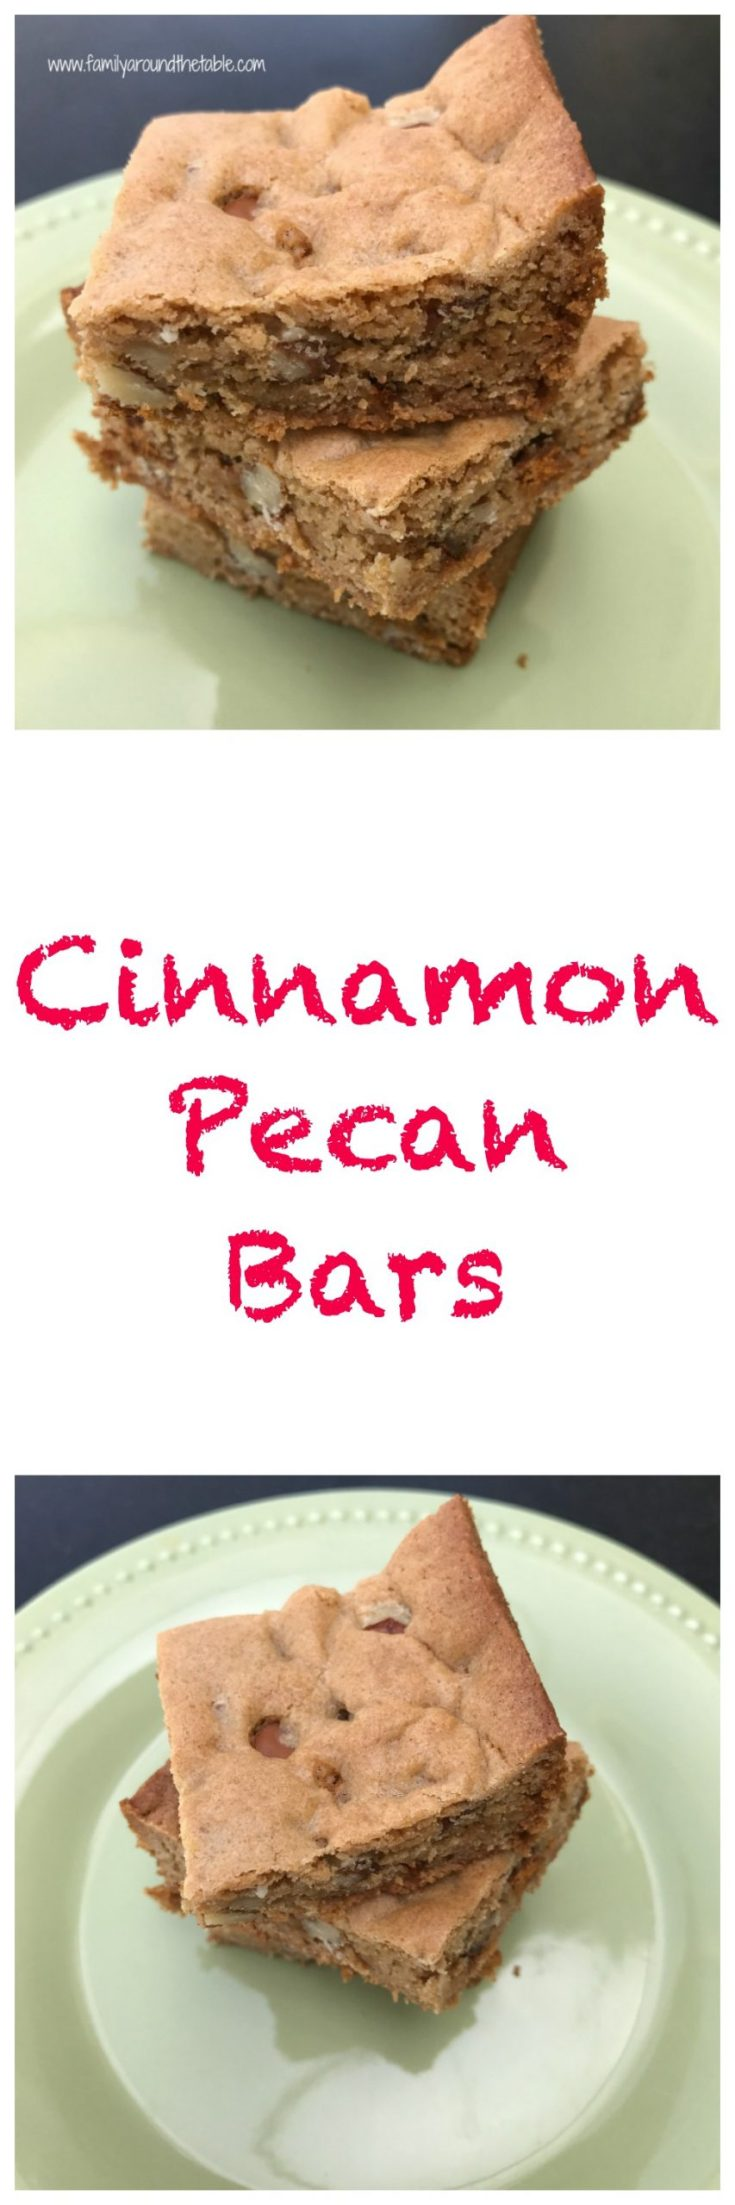 Enjoy cinnamon pecan bars with a cup of coffee or tea.